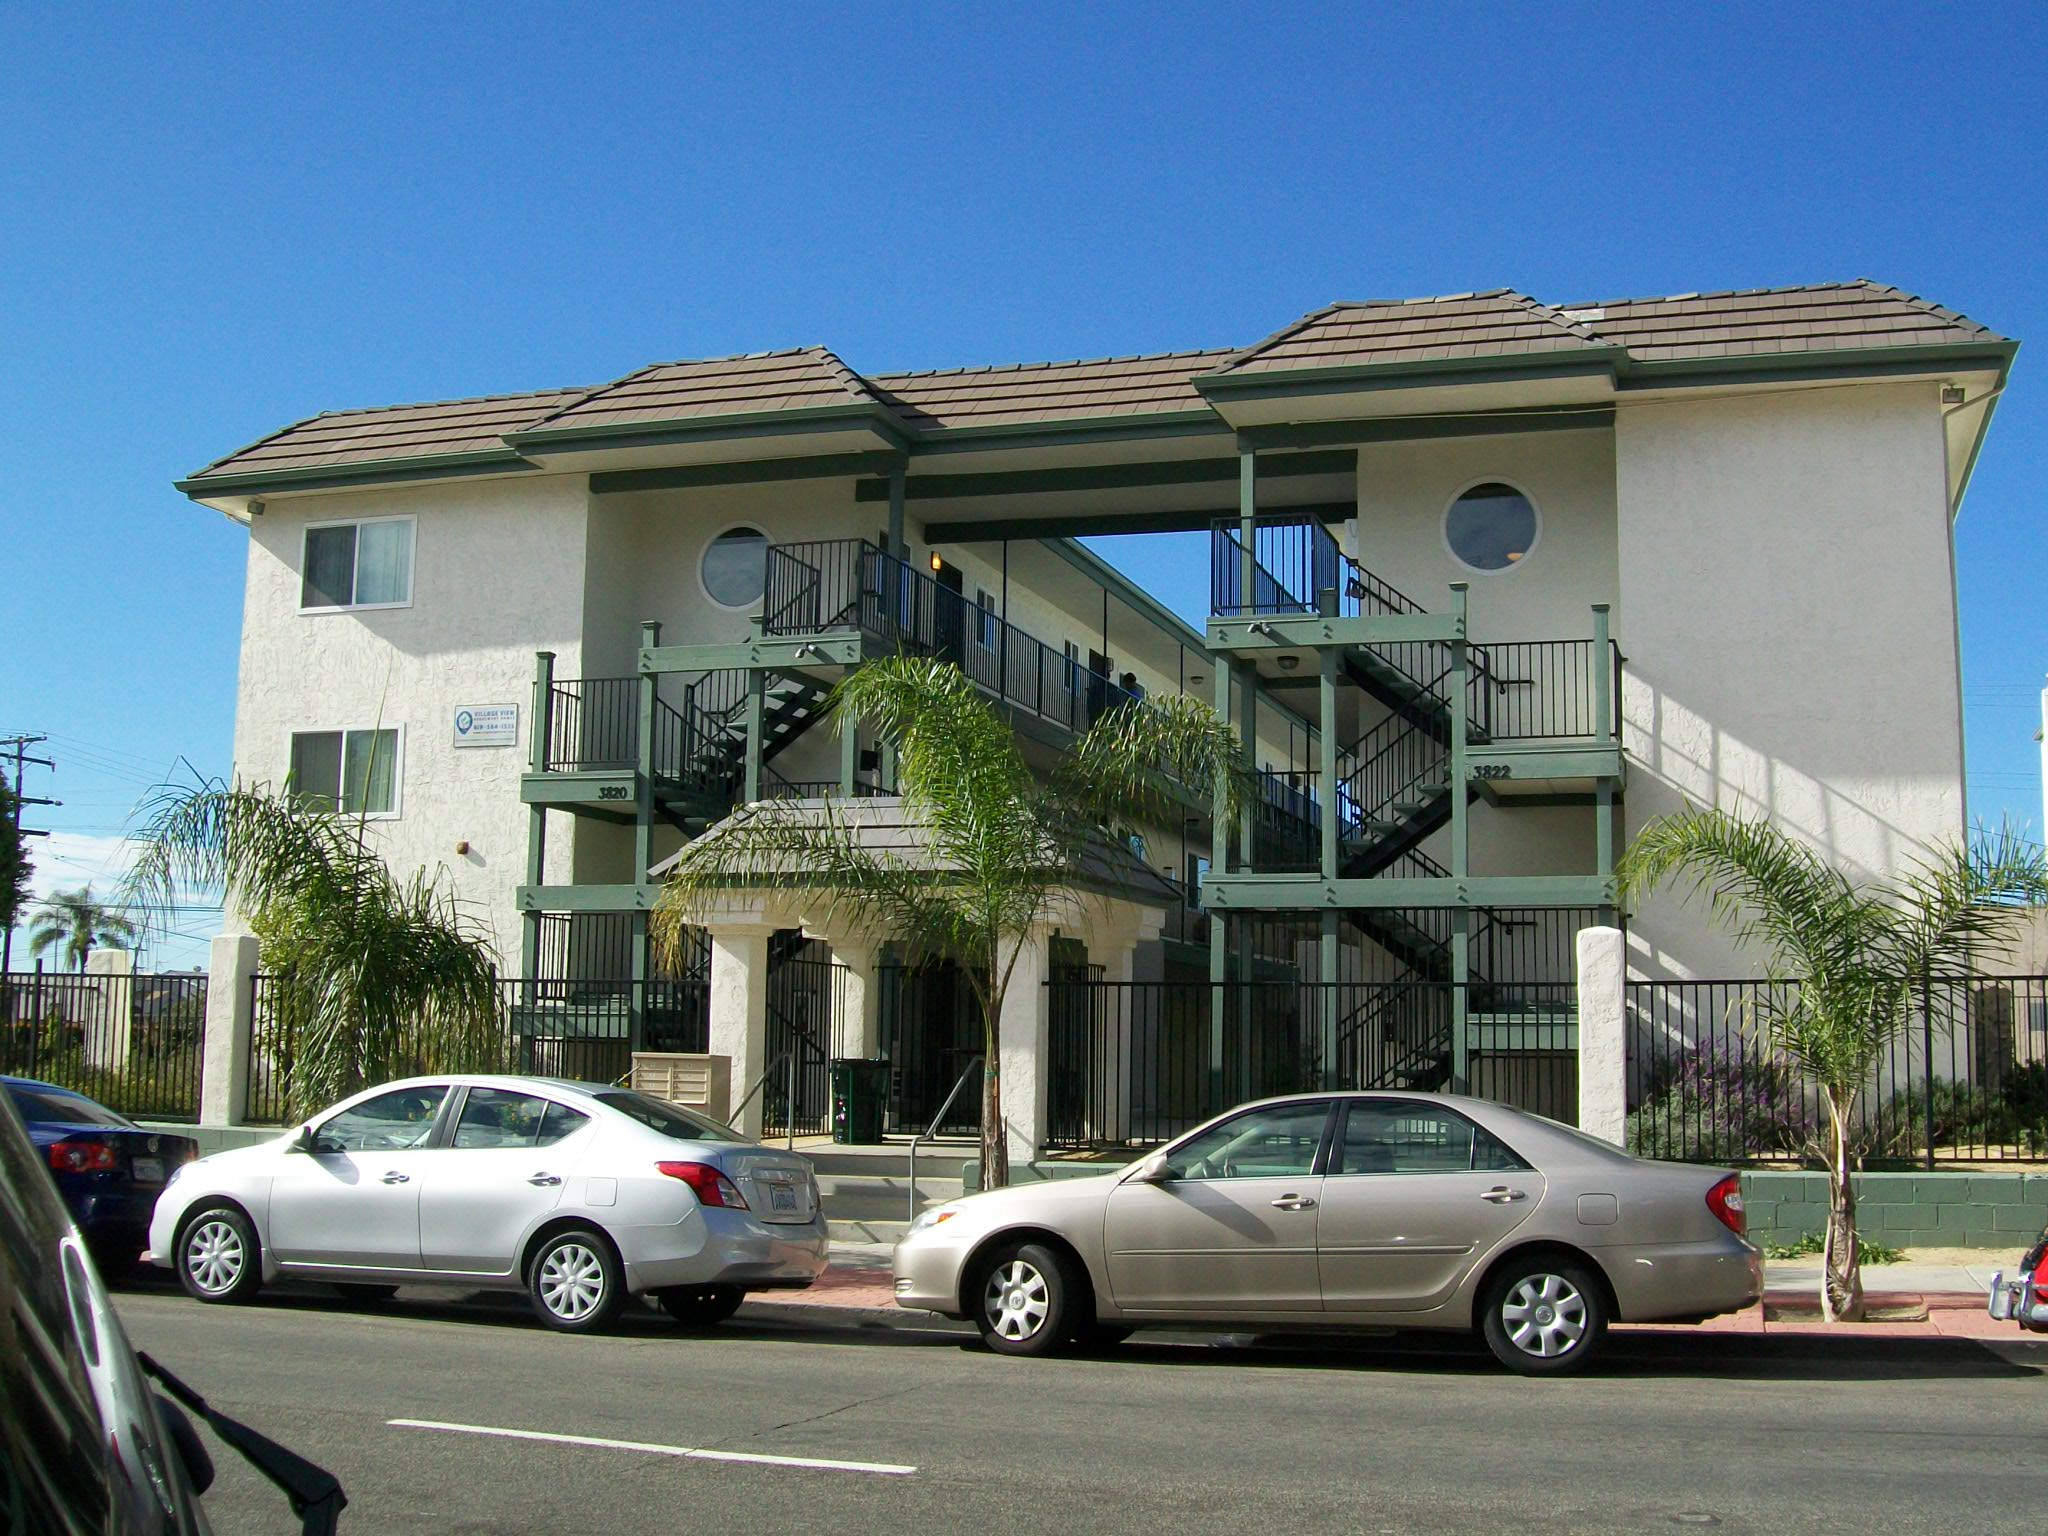 Village View, the largest of the City Heights Ten properties (30 units).